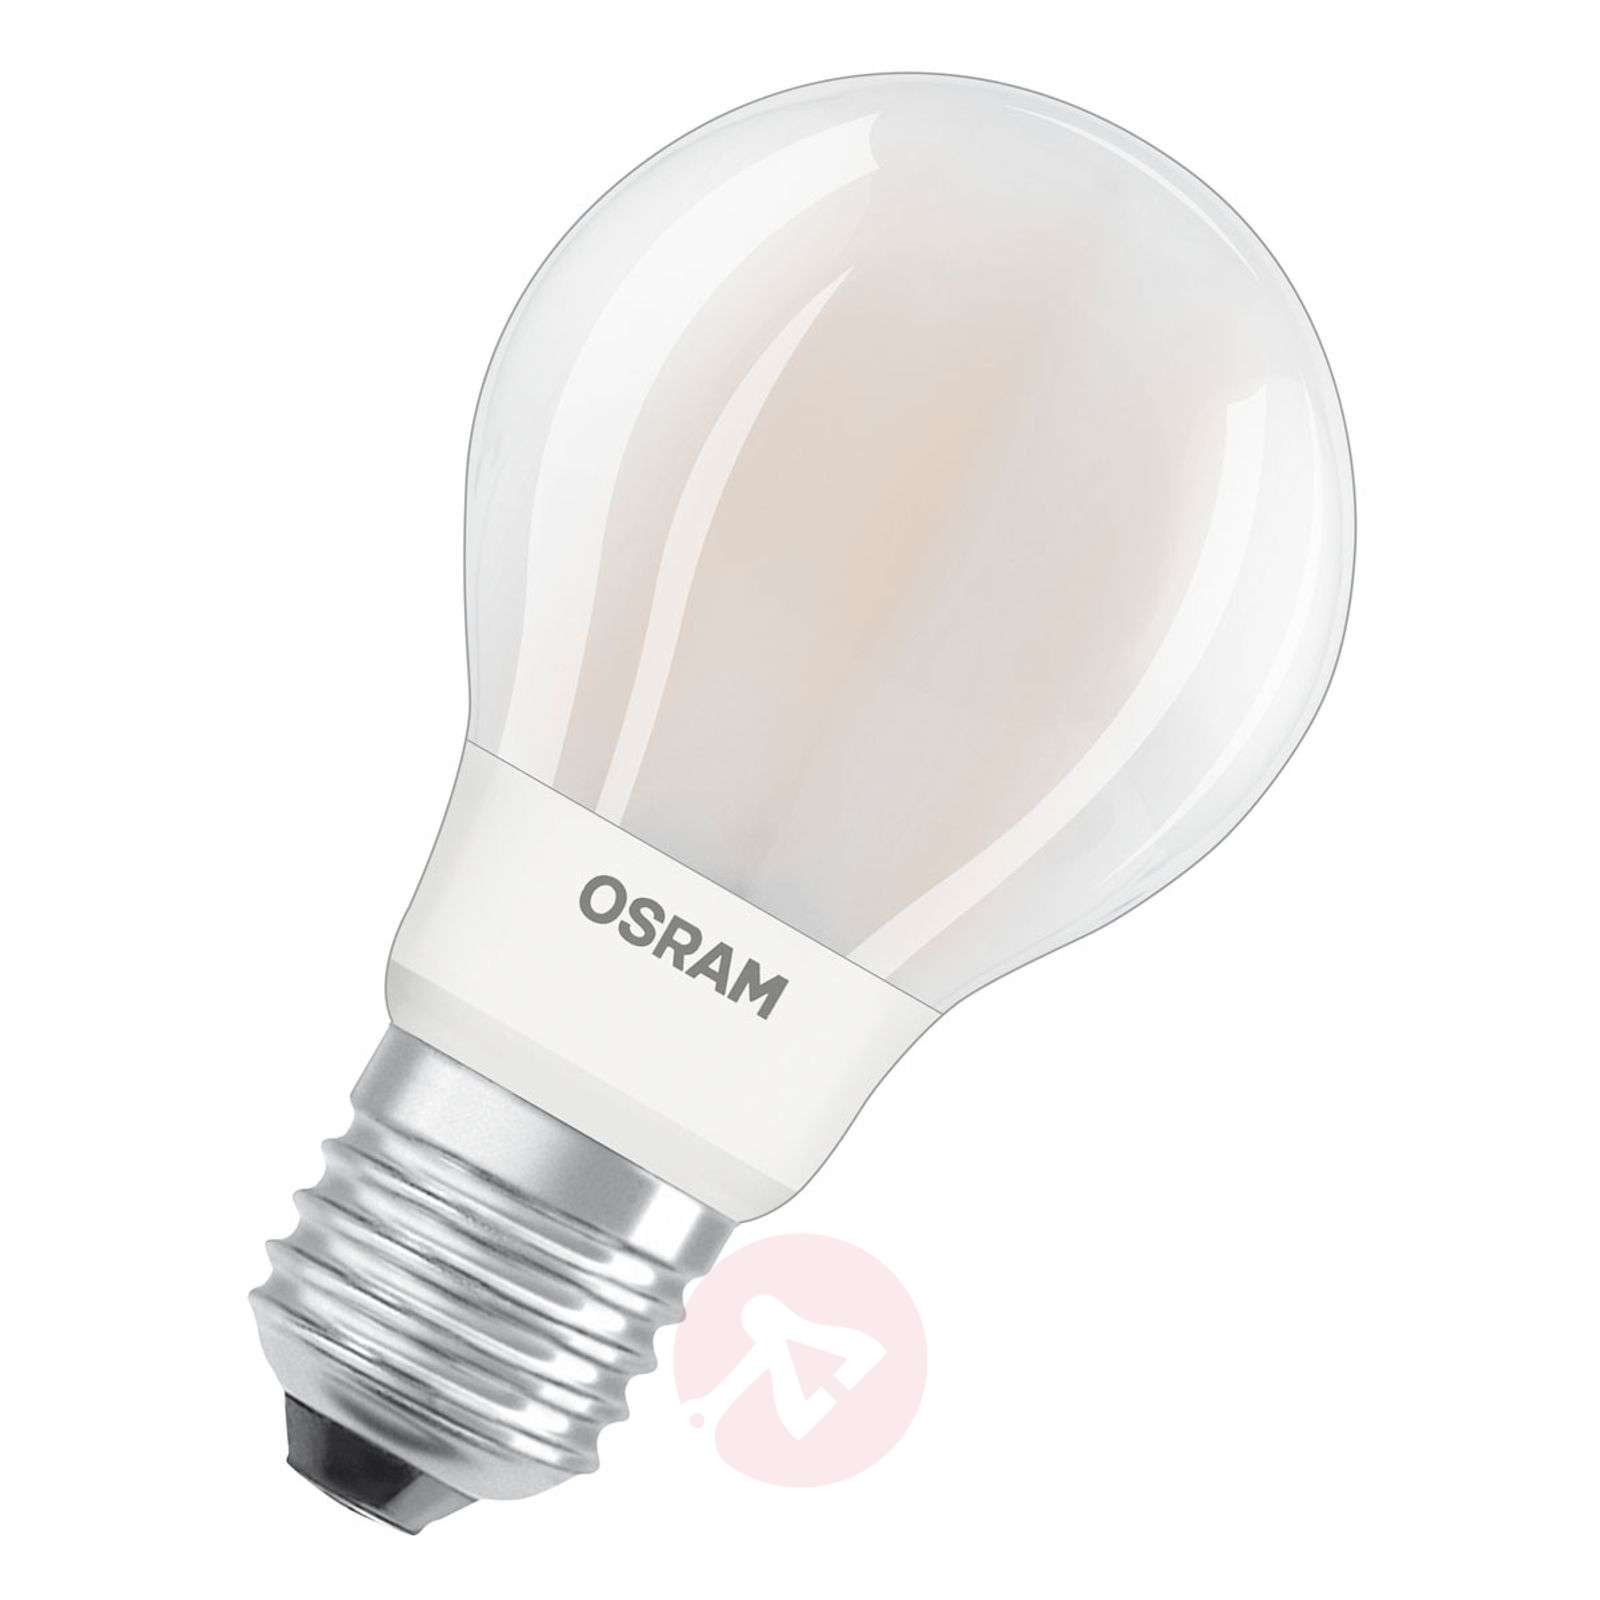 OSRAM ampoule LED E27 Superstar 12 W mat-7262219X-01